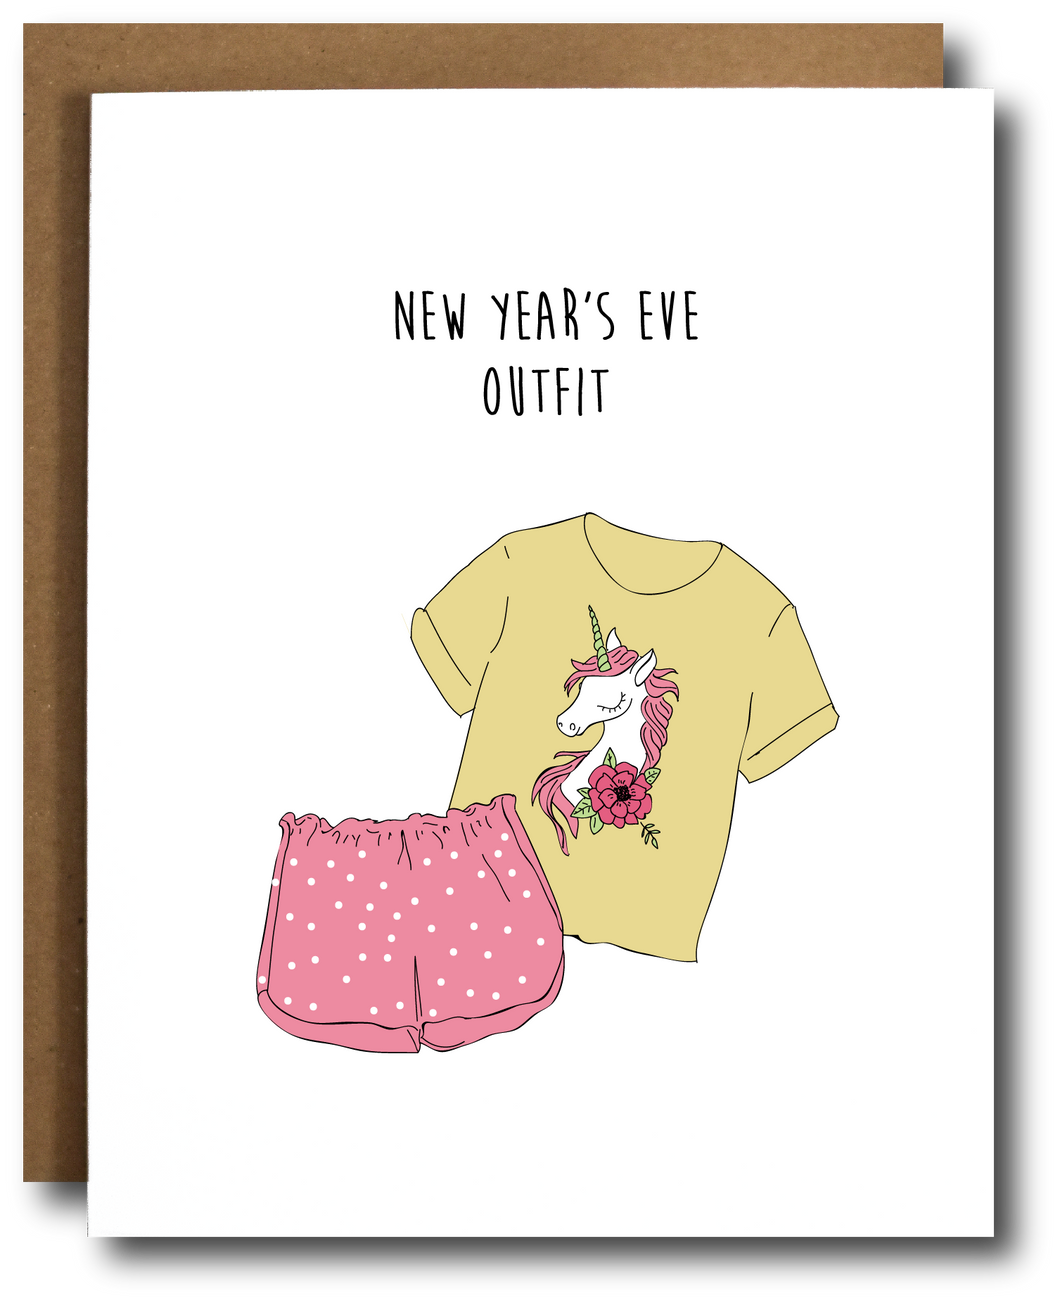 New Year's Eve outfit greeting card unicorn pajamas